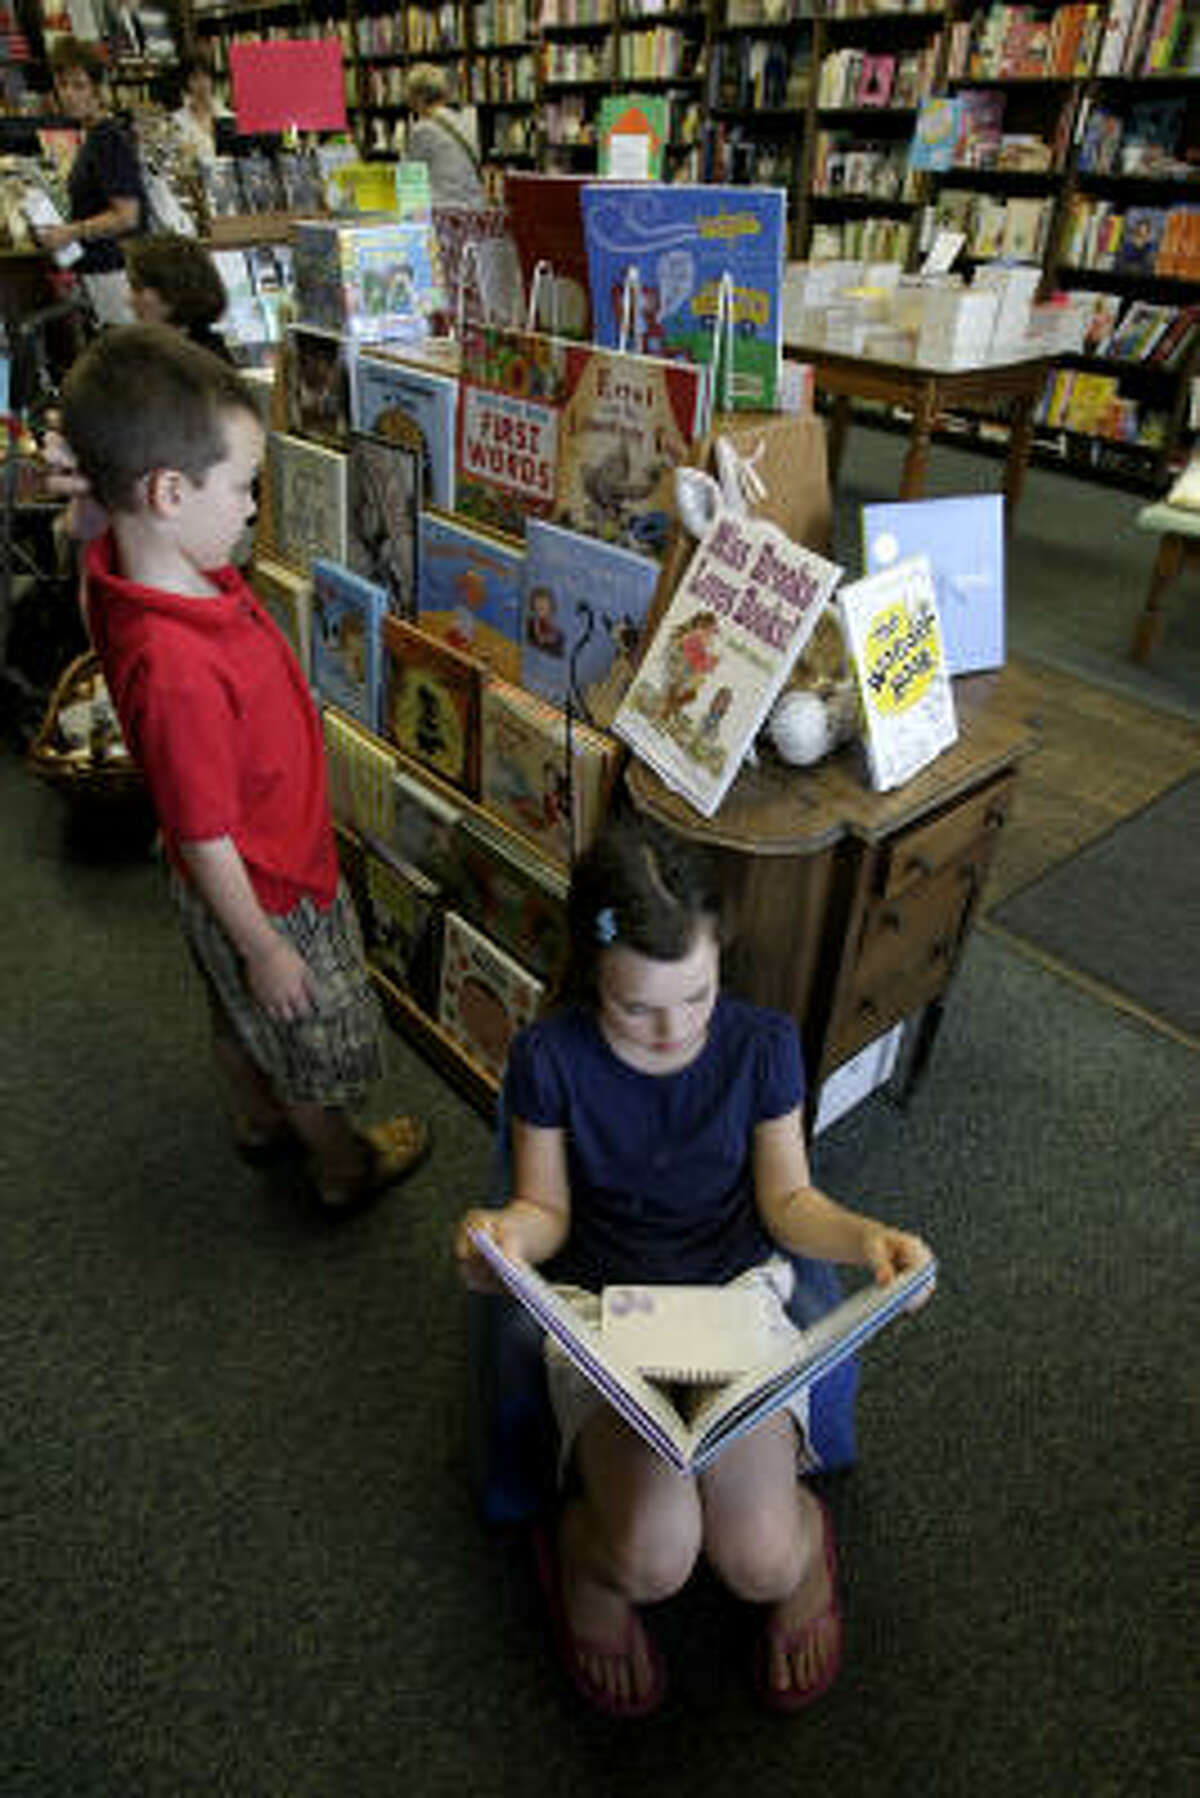 Kiley Hatch, 9, and her brother John Austin Hatch, 7, spend some time at the west Memorial area's Blue Willow Bookshop, which is having a strong year.